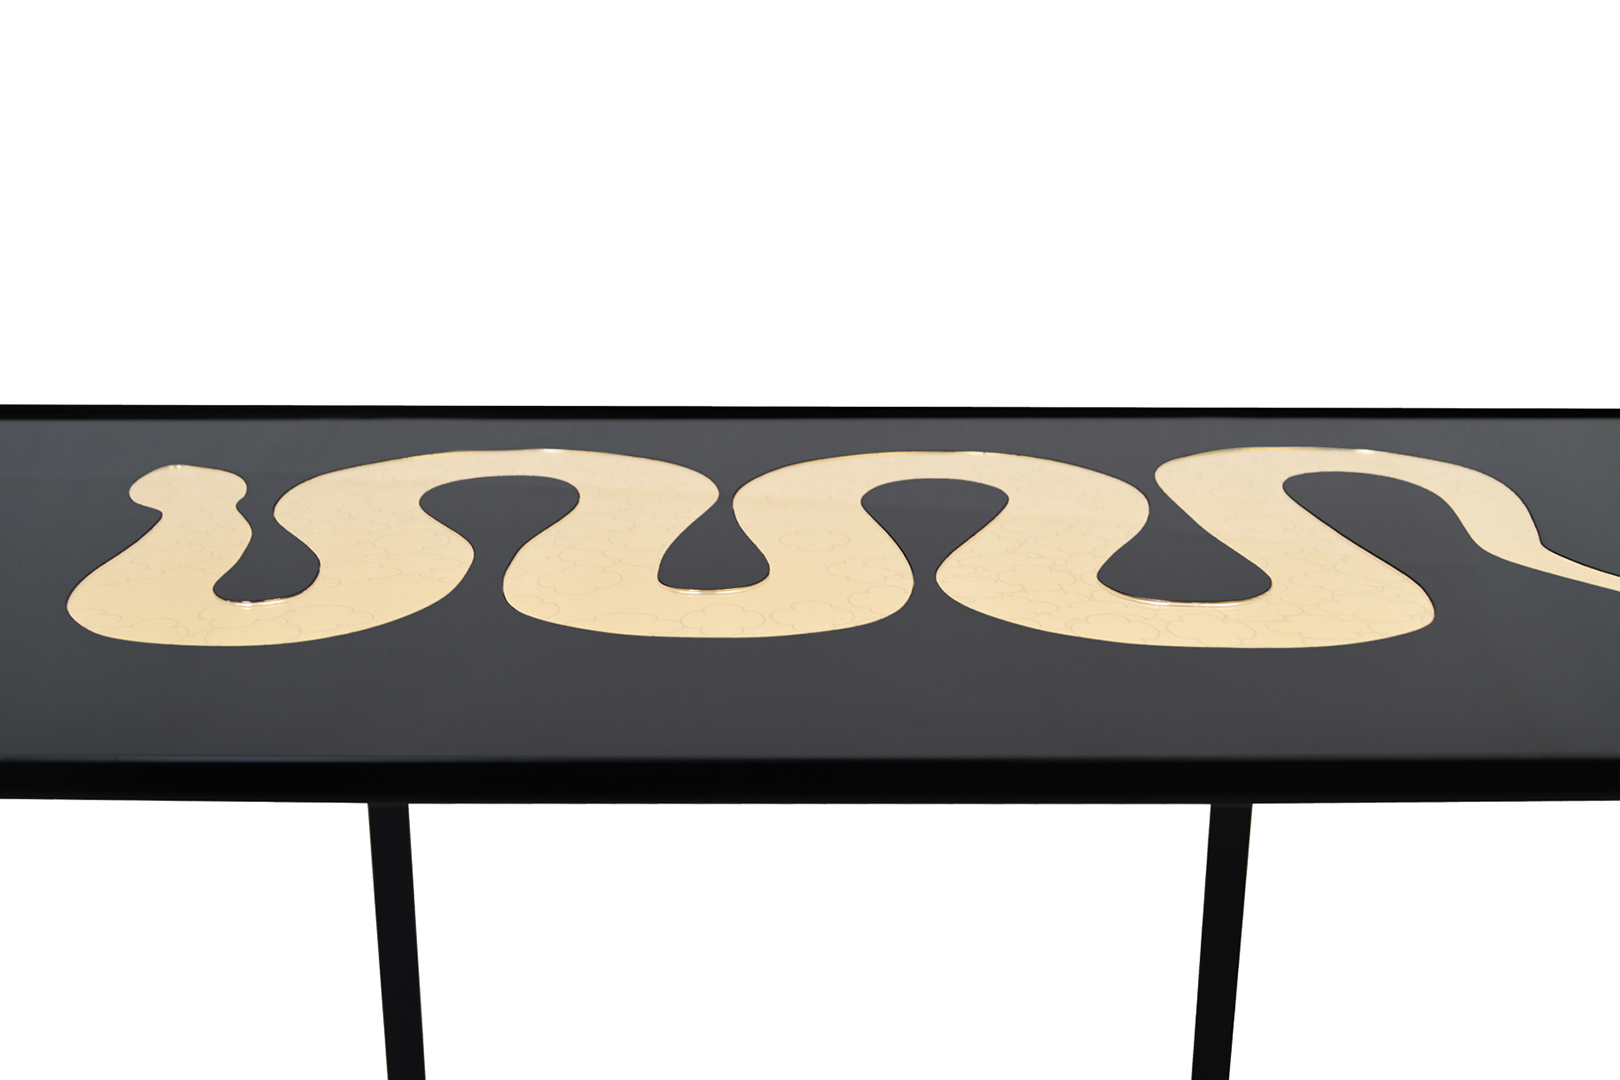 Table Serpent d'or 3